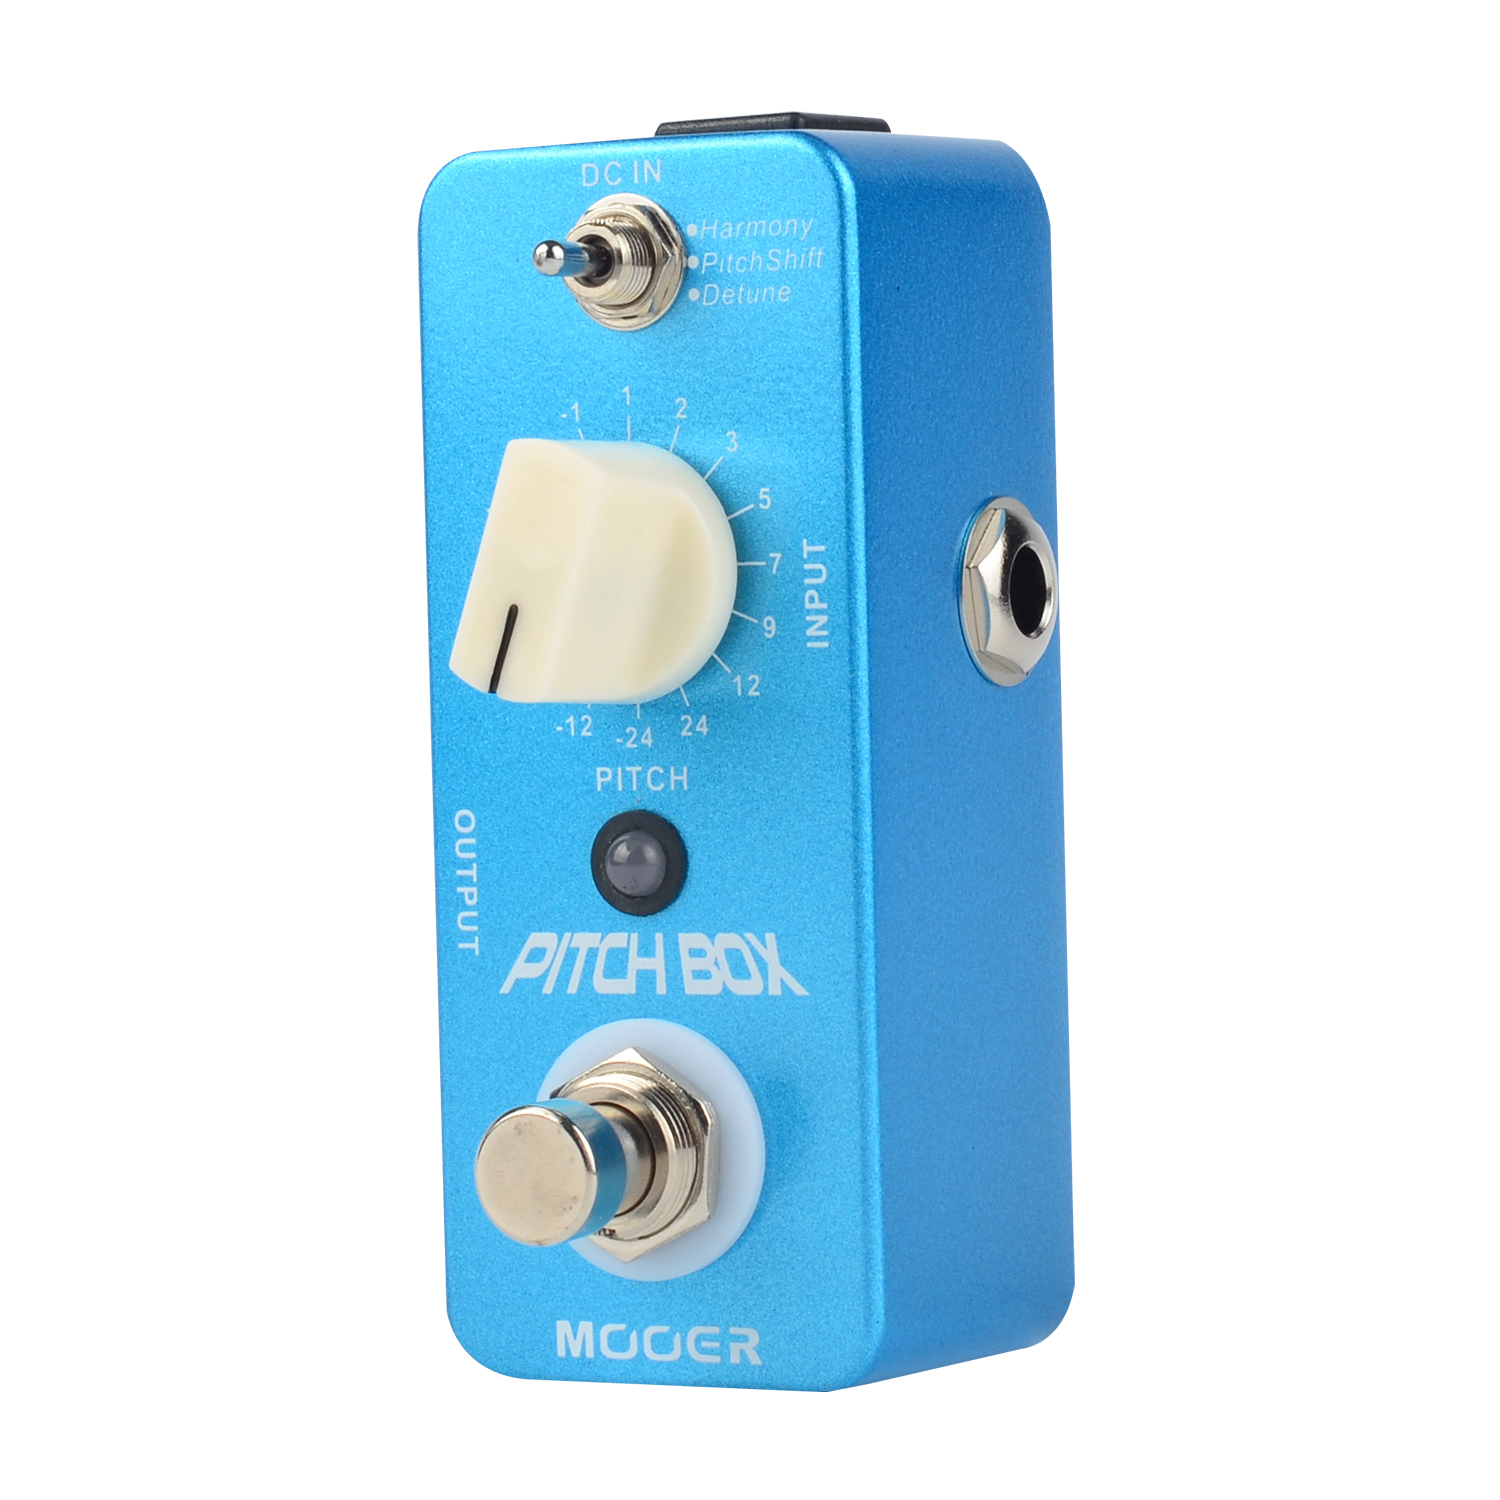 Mooer Pitch Box Guitar Effect Pedal Detune Harmony Shift Effect Modes True Bypass MPS1 aroma adr 3 dumbler amp simulator guitar effect pedal mini single pedals with true bypass aluminium alloy guitar accessories